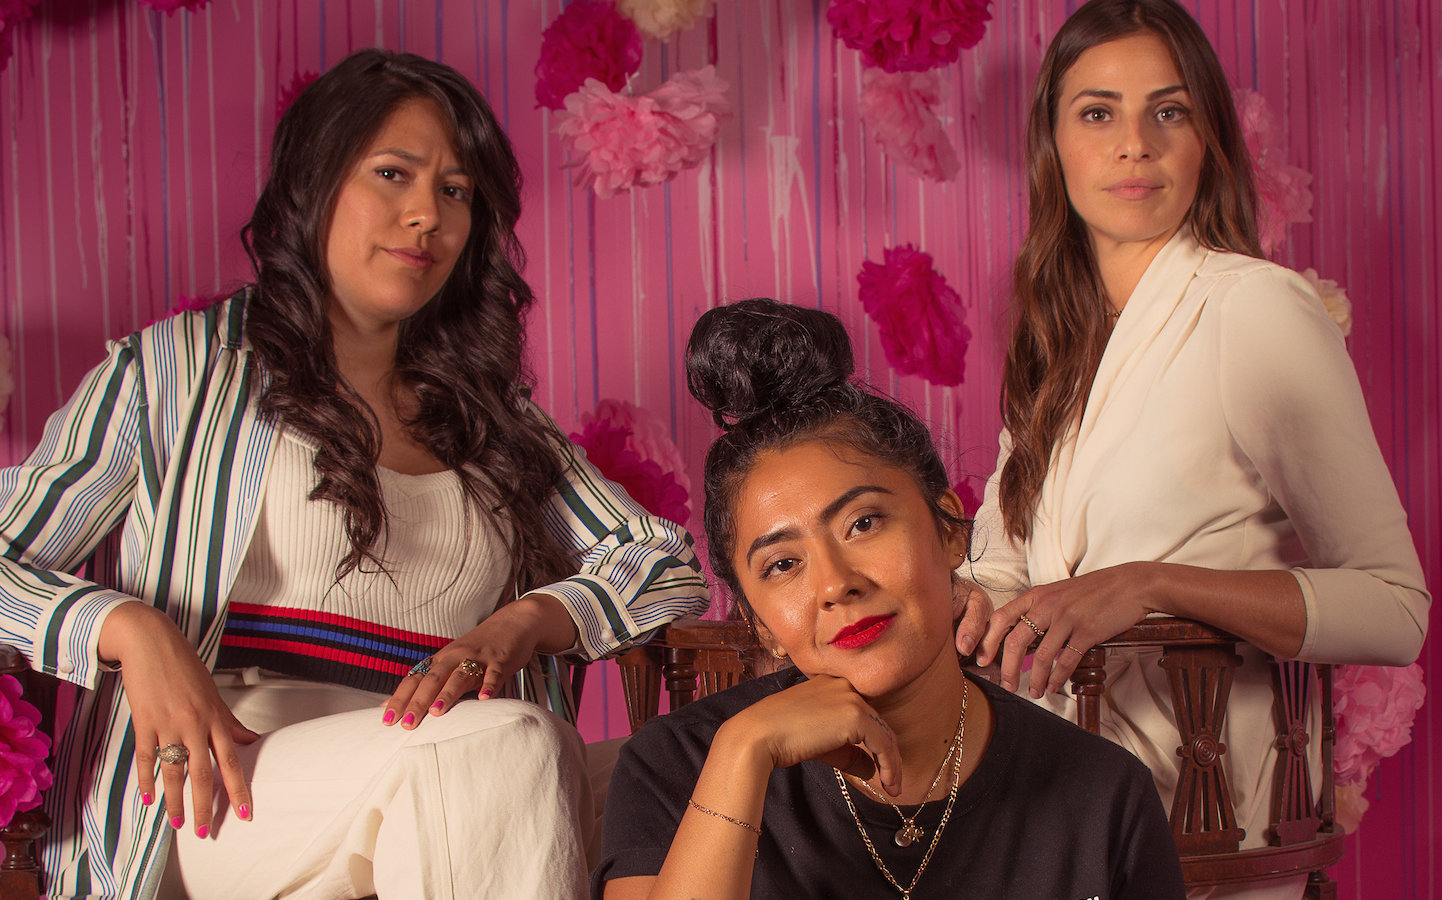 TRAILER: This Chicago-Set Web Series Is a Latina Feminist Workplace Comedy